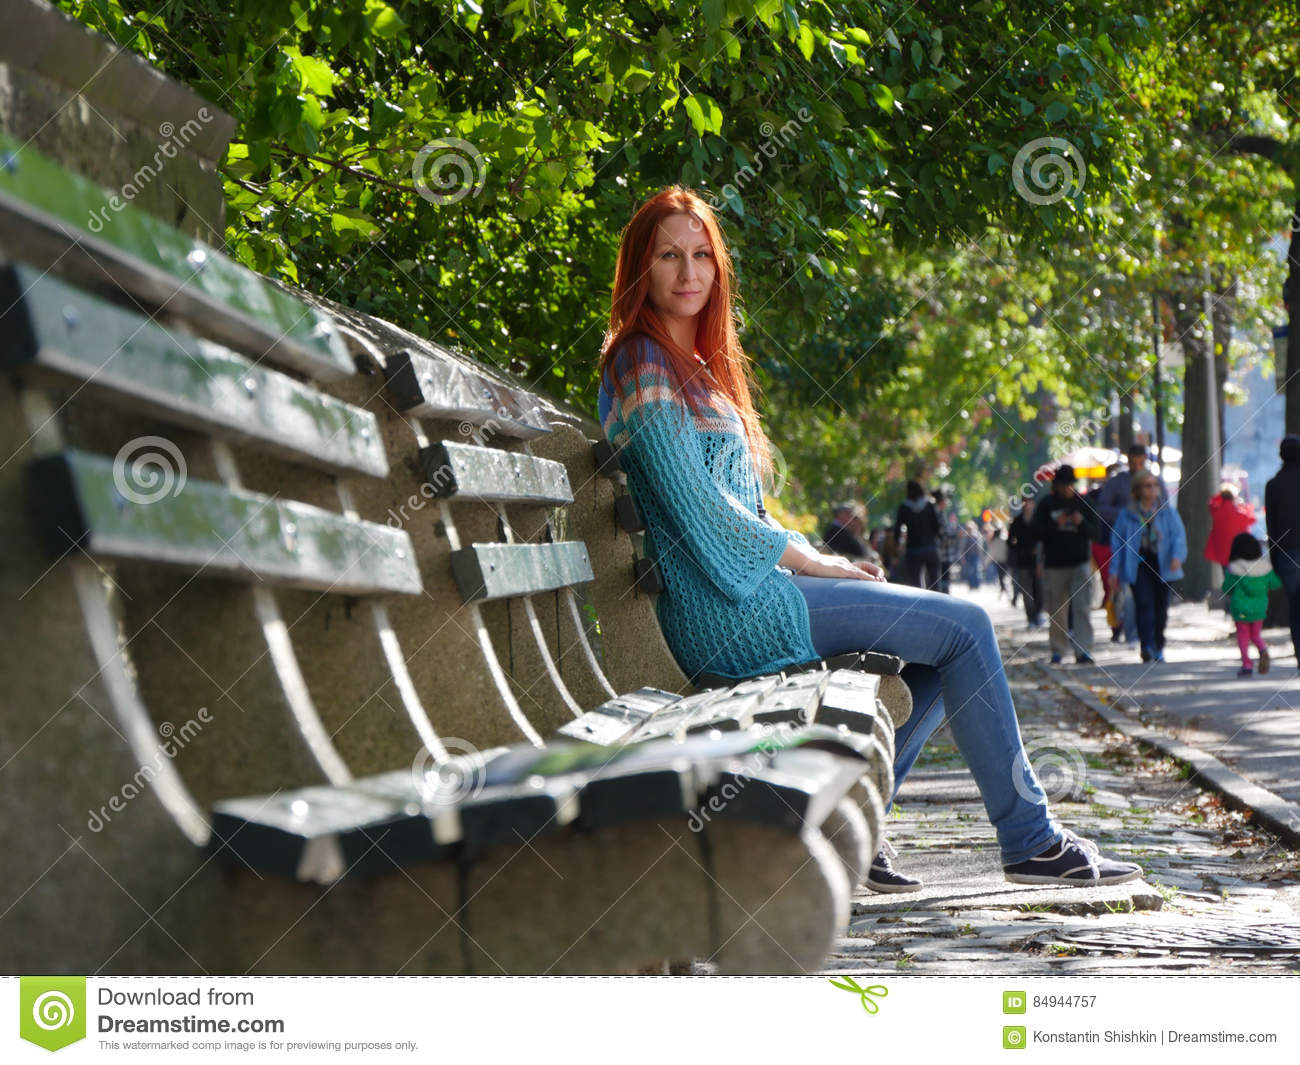 Cute Smiling Young Woman In Blue Jacket Sitting At Bench Central